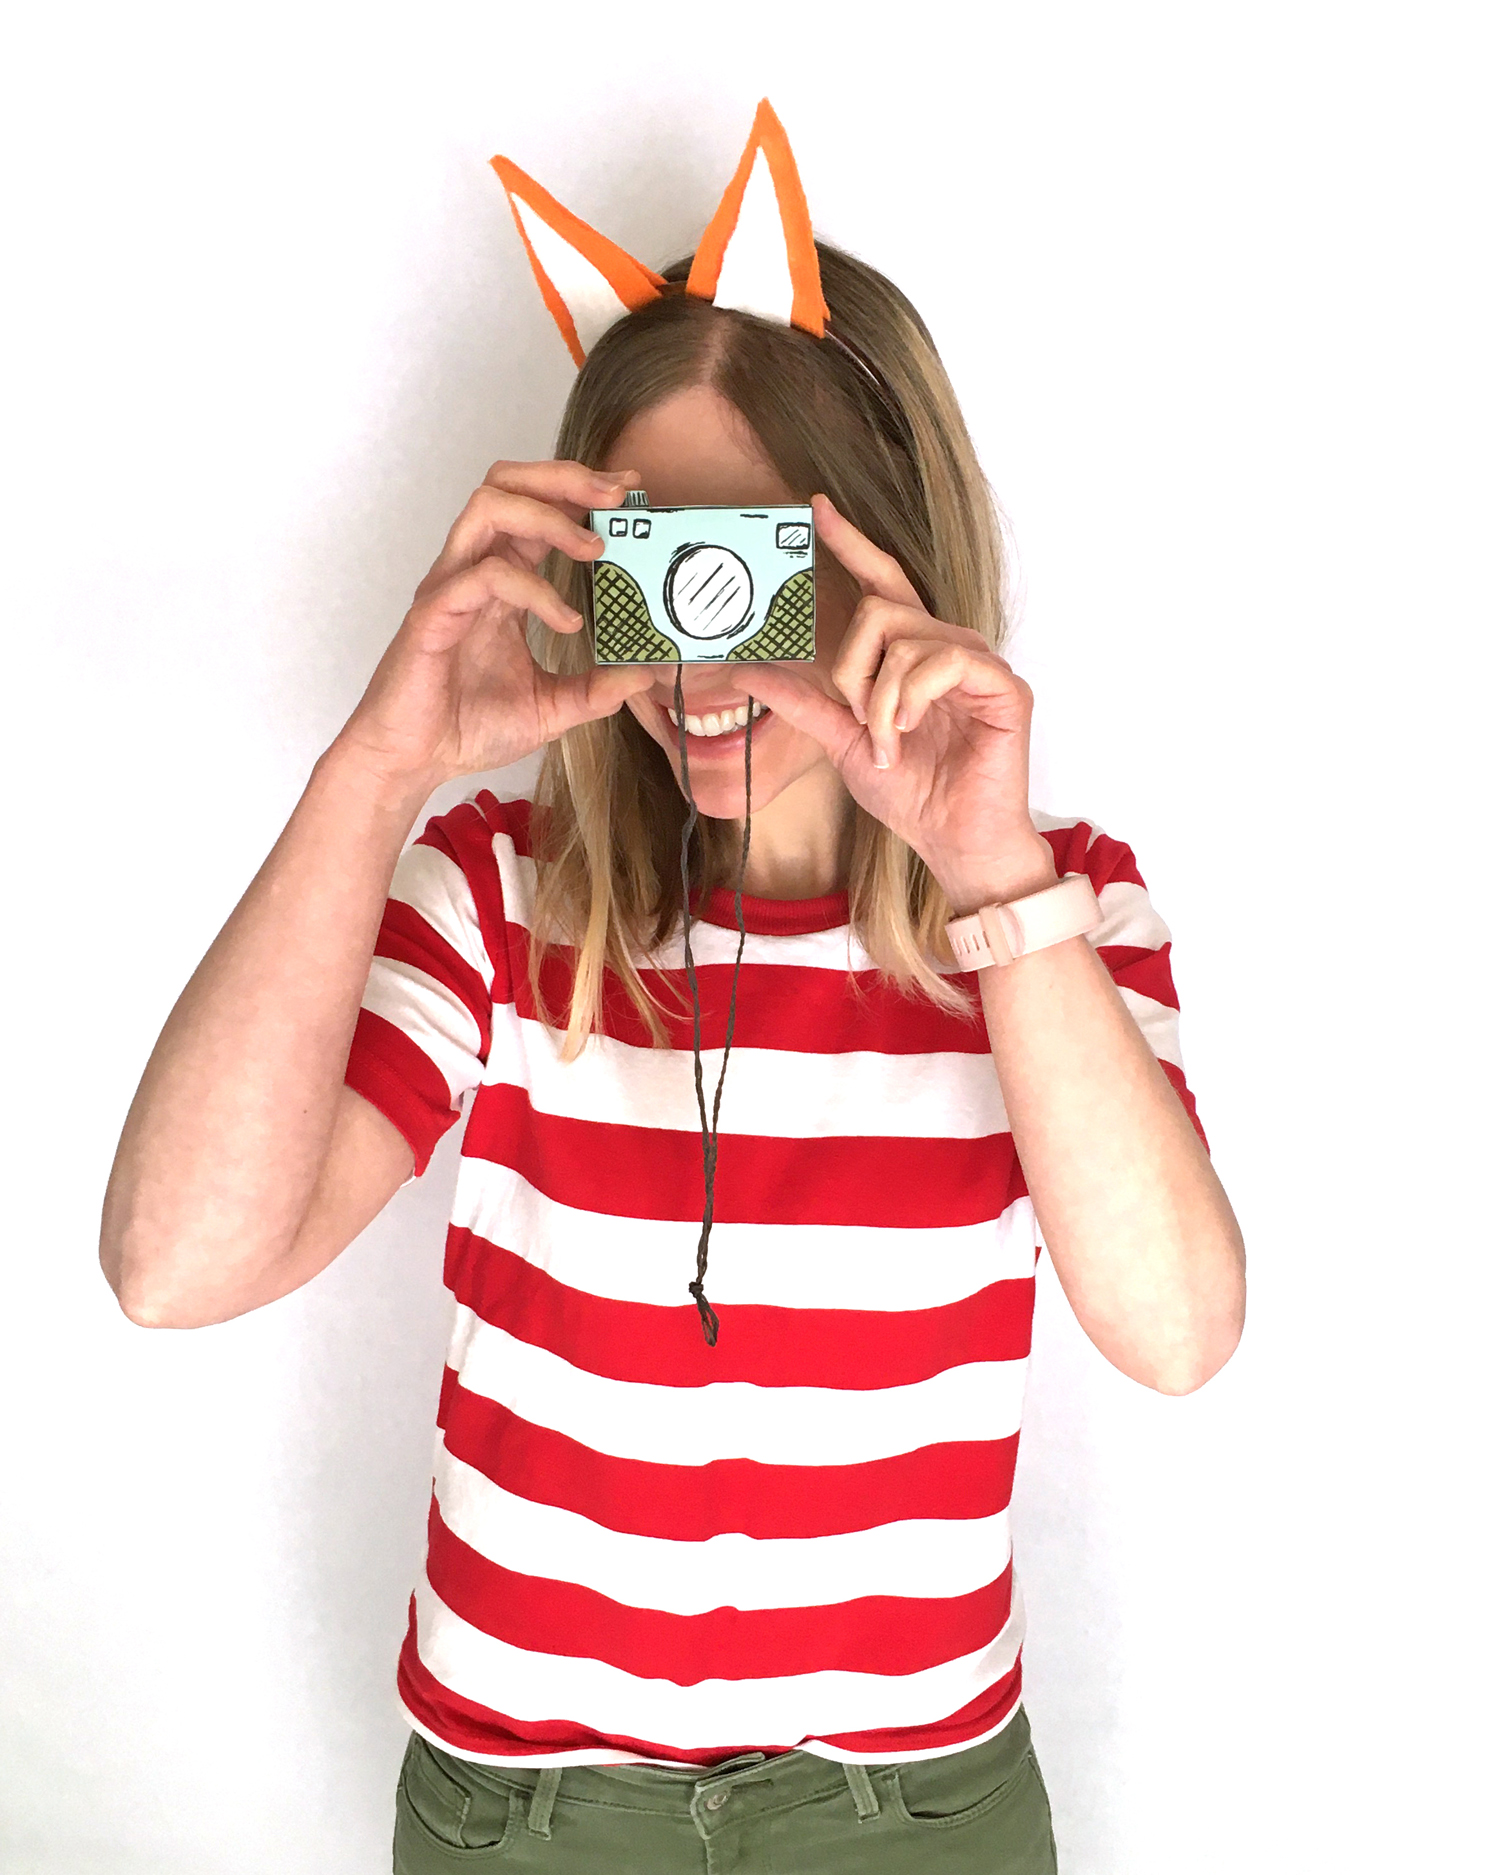 diy book character costume, homemade costume ideas, homemade halloween costume, easy last minute costume for halloween, for kids, for teachers, fox ears headband, paper camera